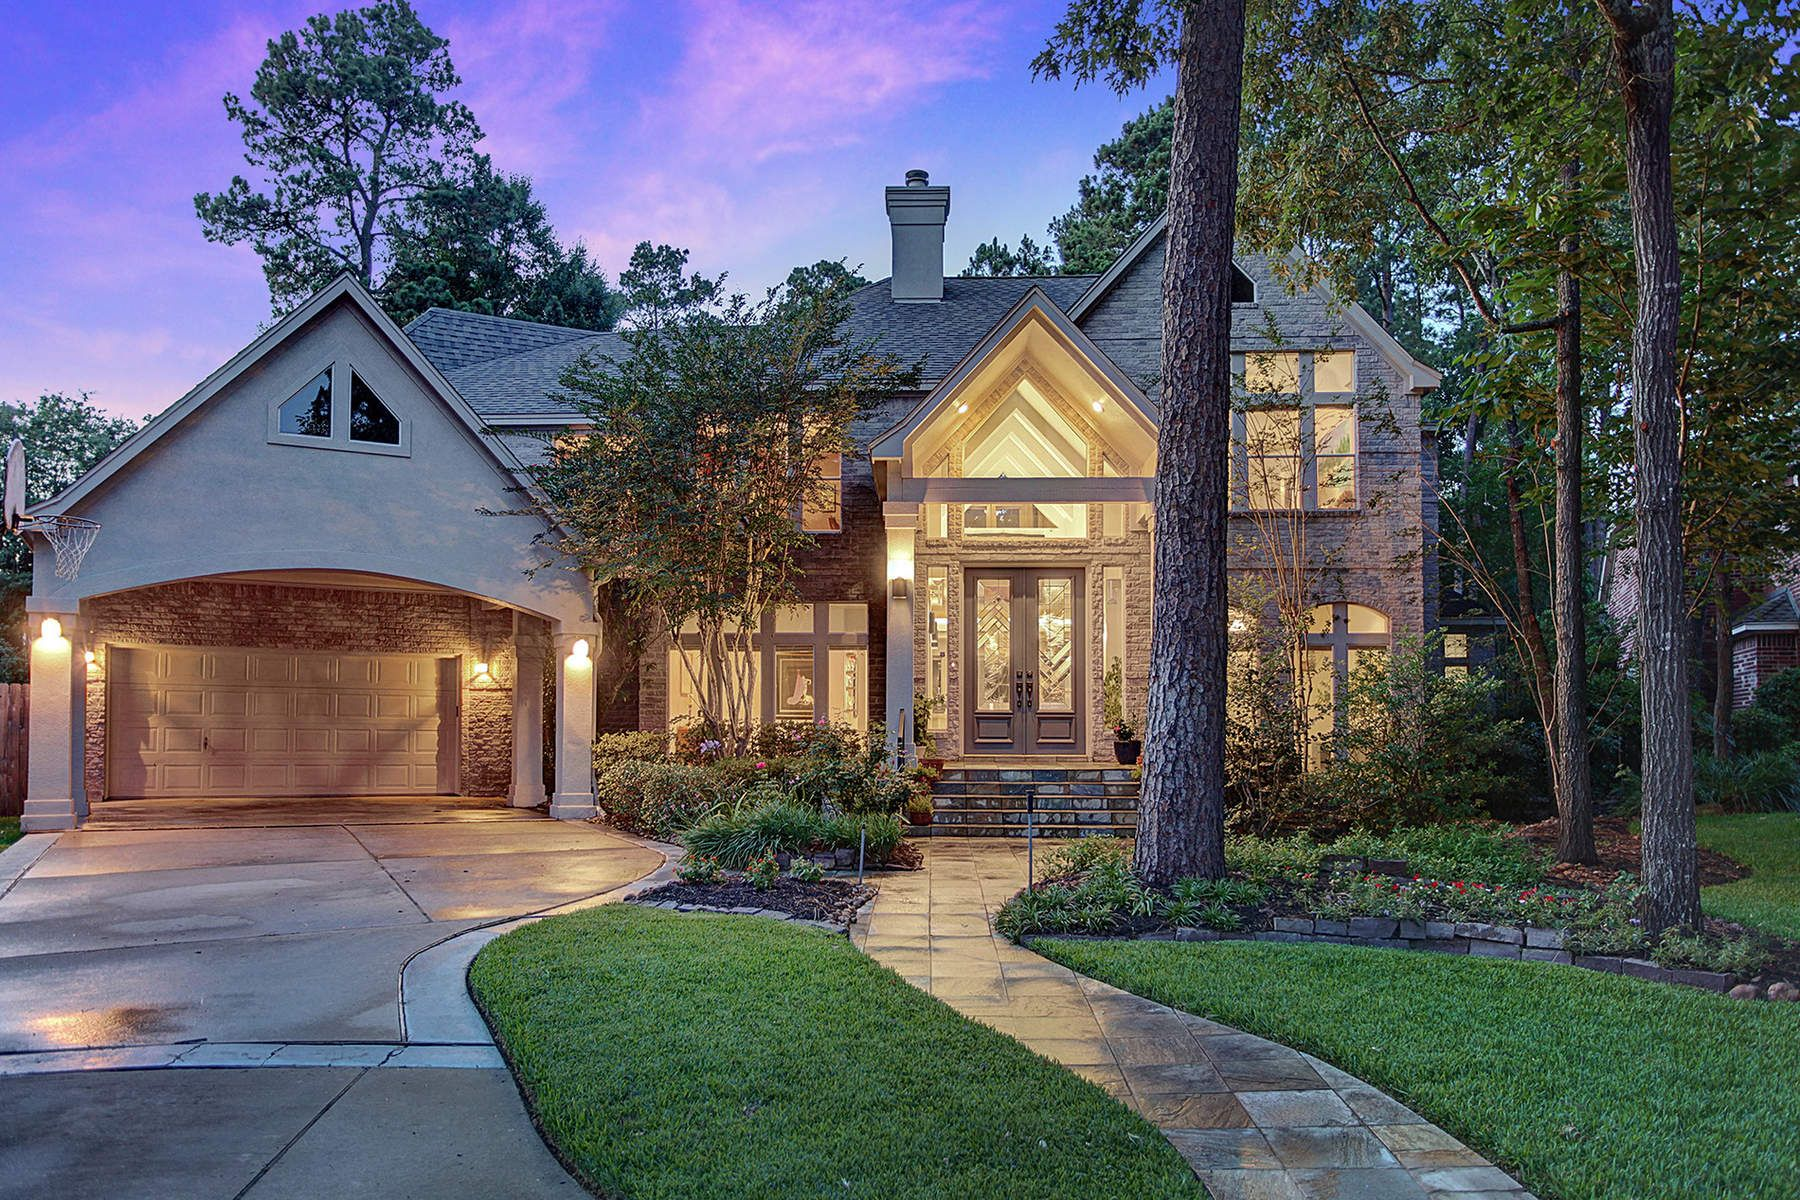 Single Family Home for Sale at 16426 Agusta Court 16426 Agusta Court Spring, Texas 77379 United States